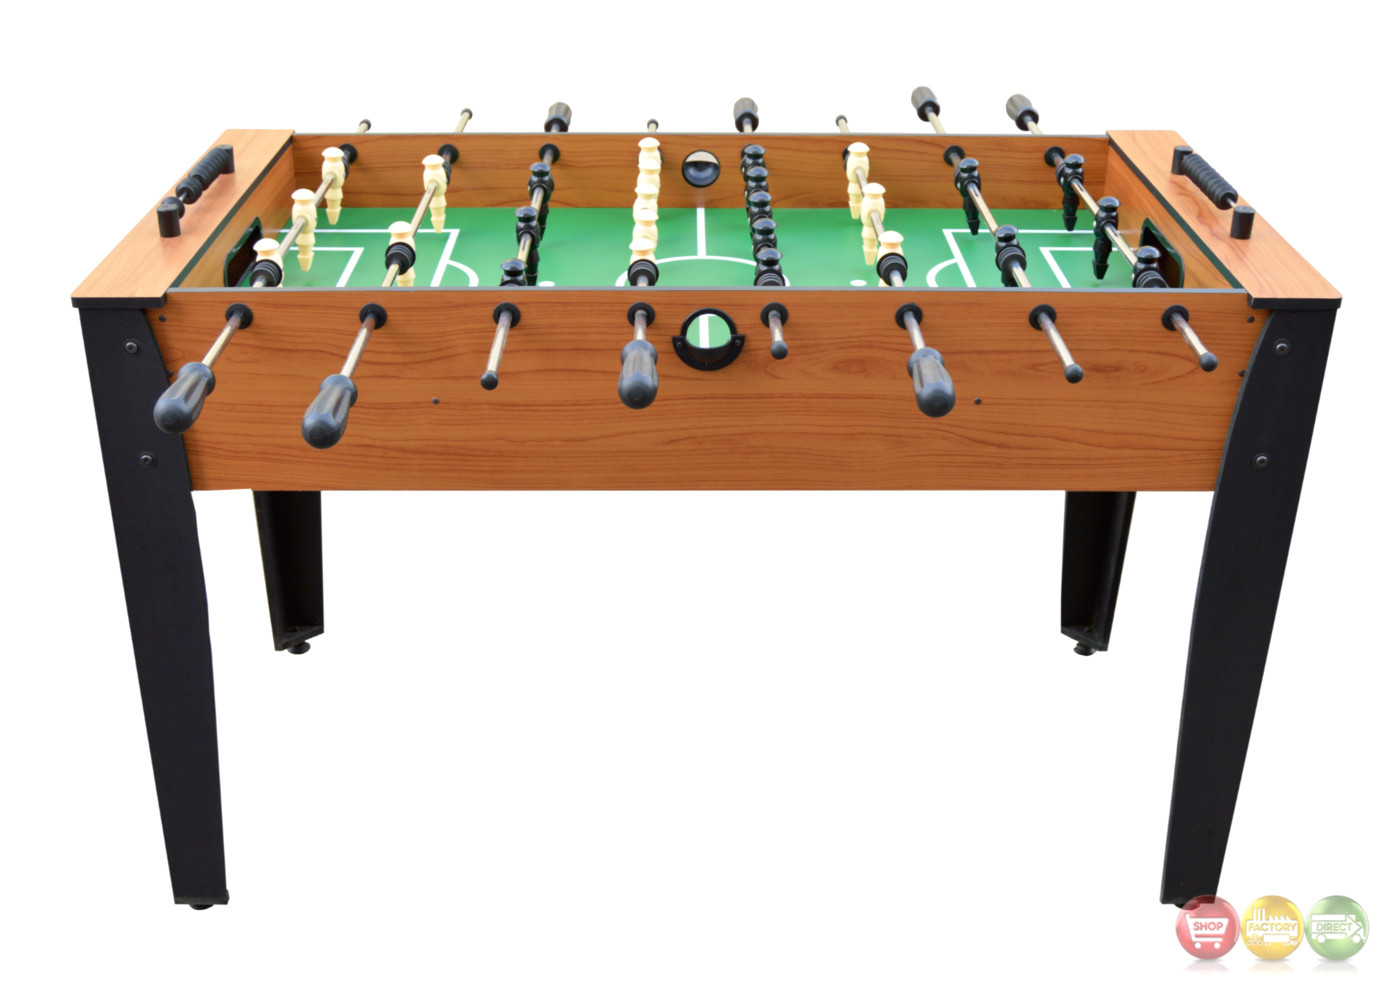 Wooden Foosball Table Plans - Bing images